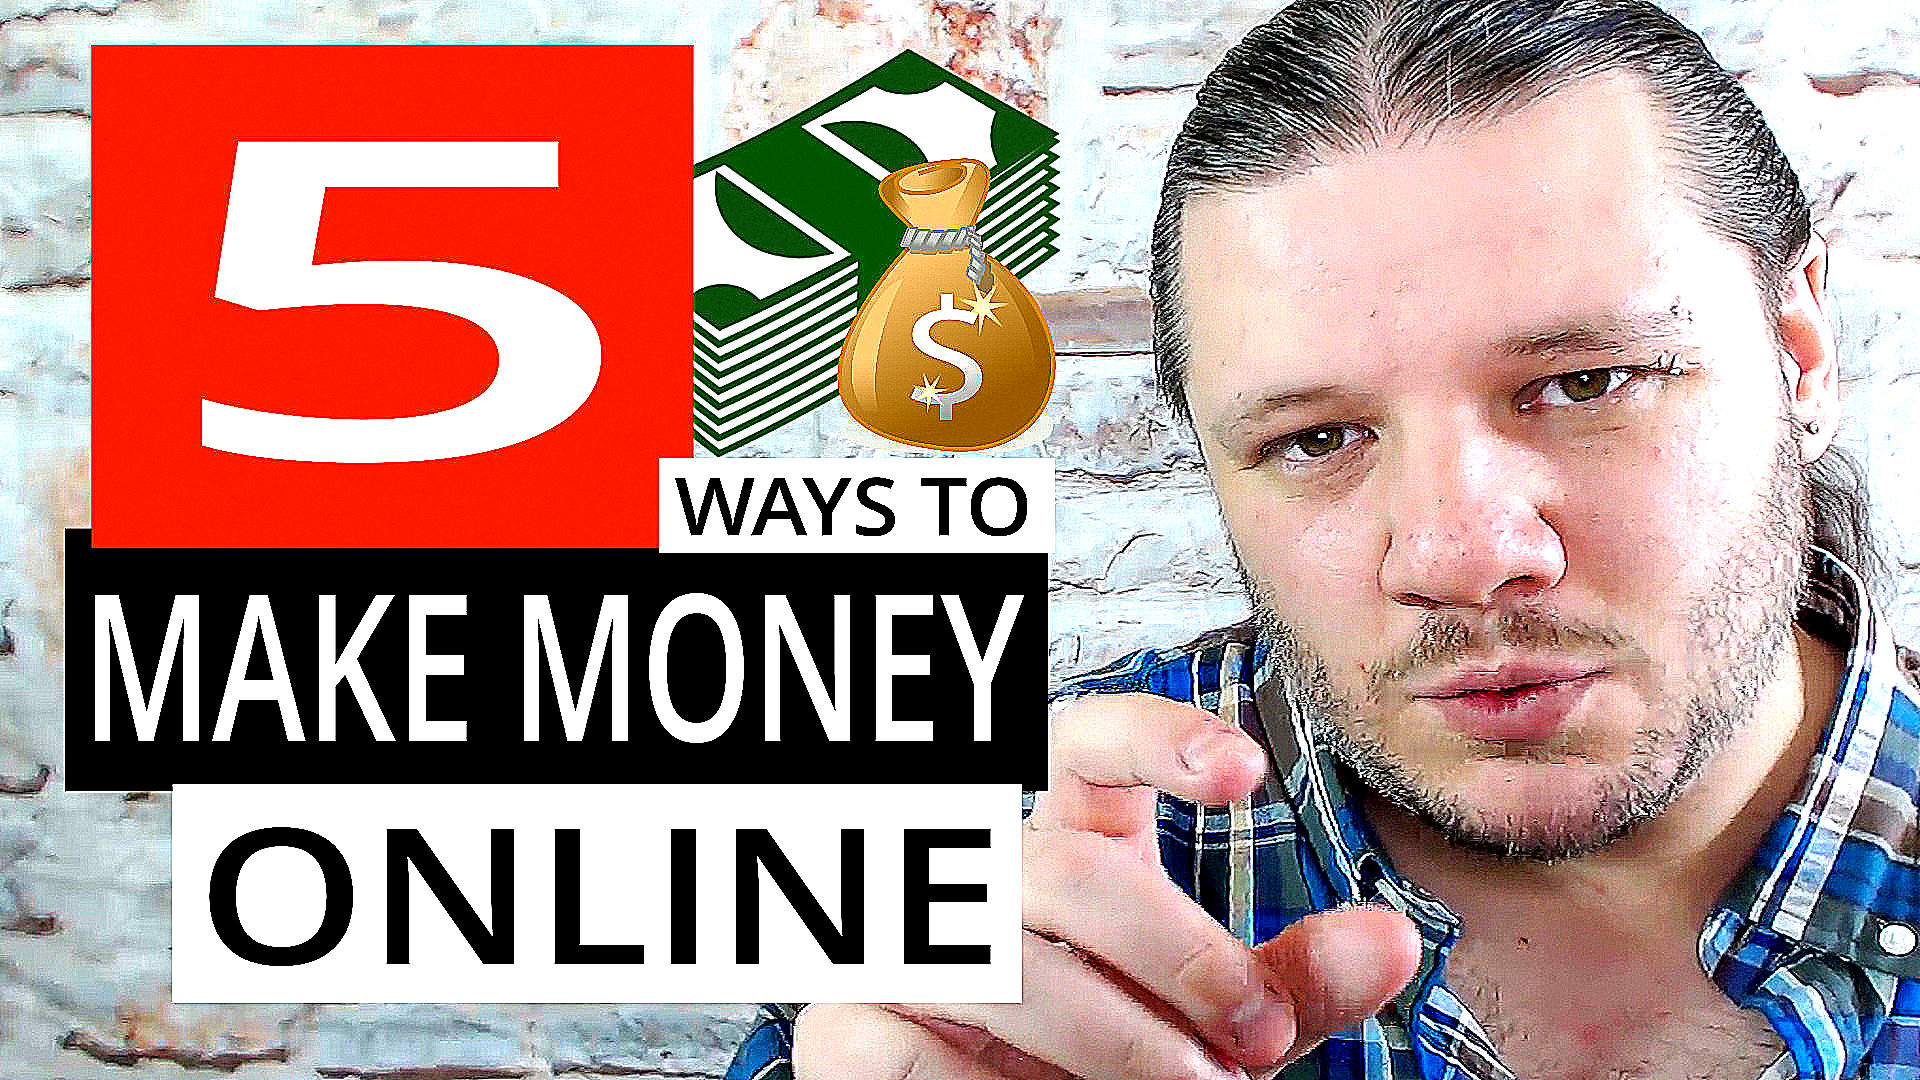 alan spicer,alanspicer,youtube tips,youtube tricks,asyt,5 Ways To Make Money Online,ways to make money online,5 ways to make money,ways to make money,make money online,make money,making money online,making money,making online money,5 ways to making money online,make money on youtube,making money on youtube,making money online youtube,youtube money,affiliate marketing,amazon affiliate marketing,amazon affiliate links,make money online with amazon,money